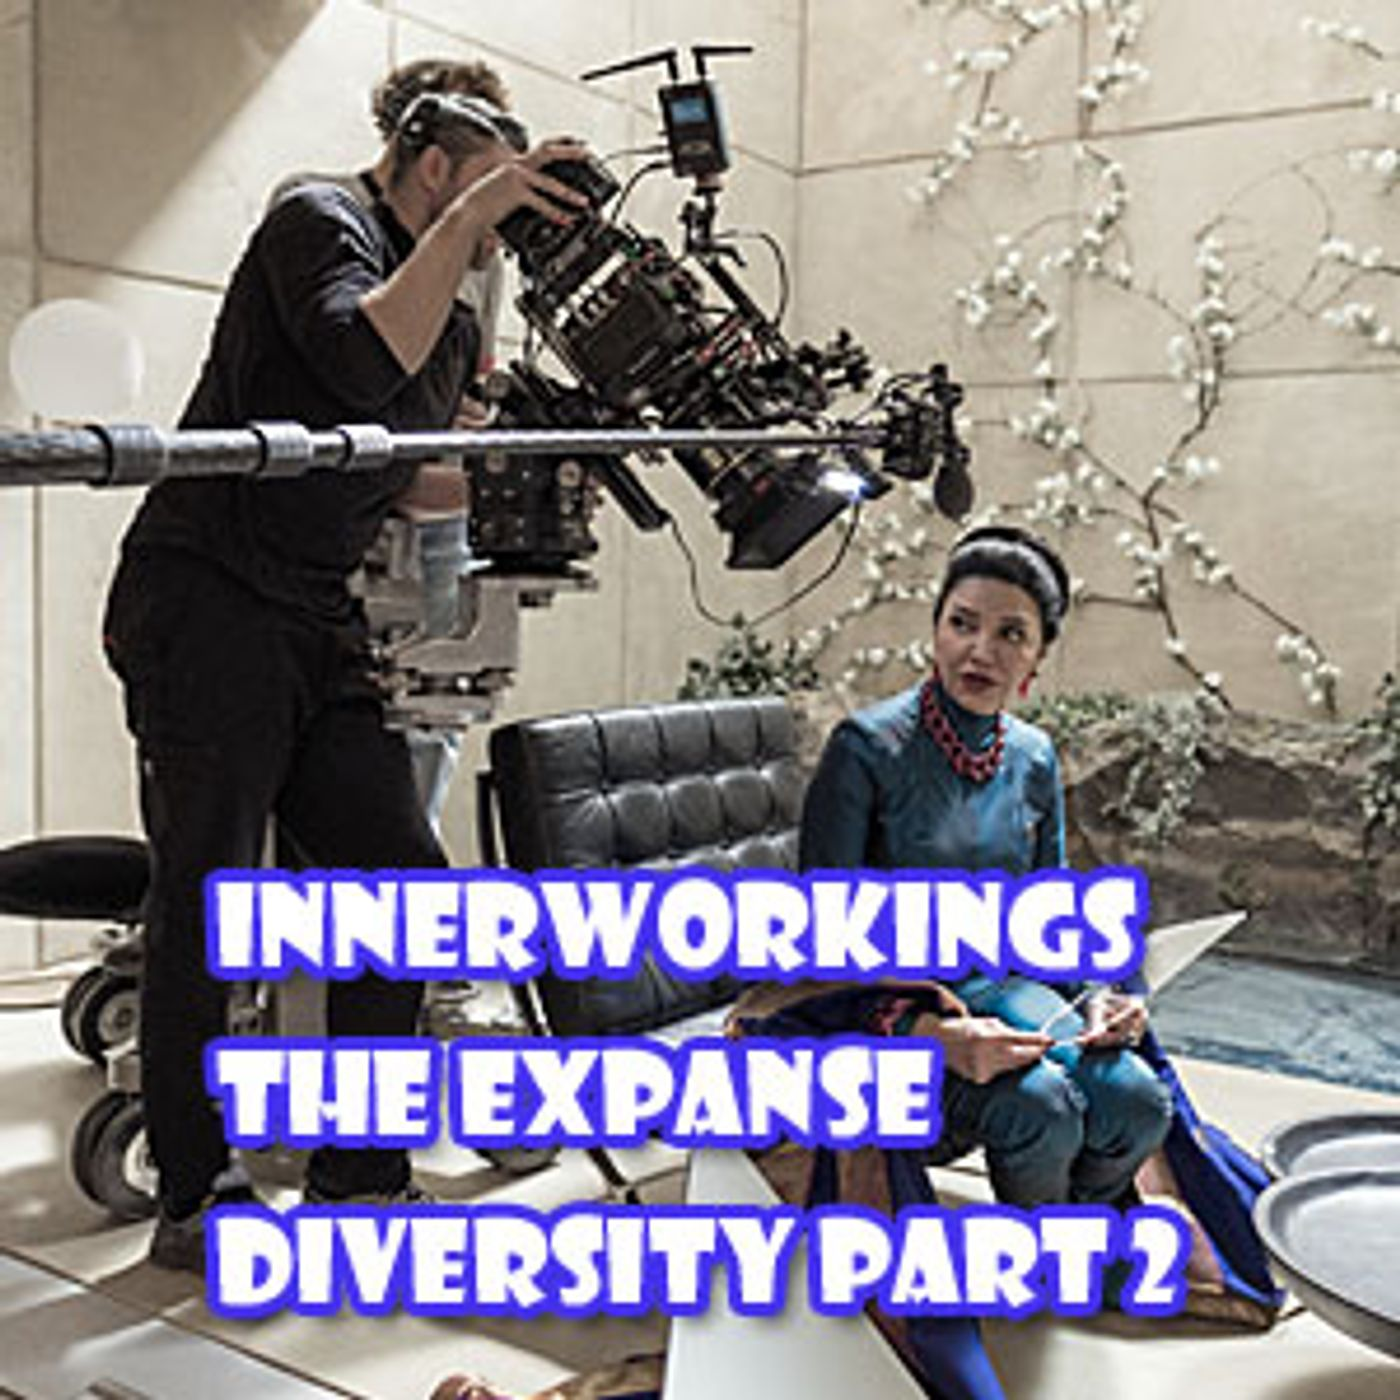 The Innerworkings Episode 4 The Expanse Diversity Part Two